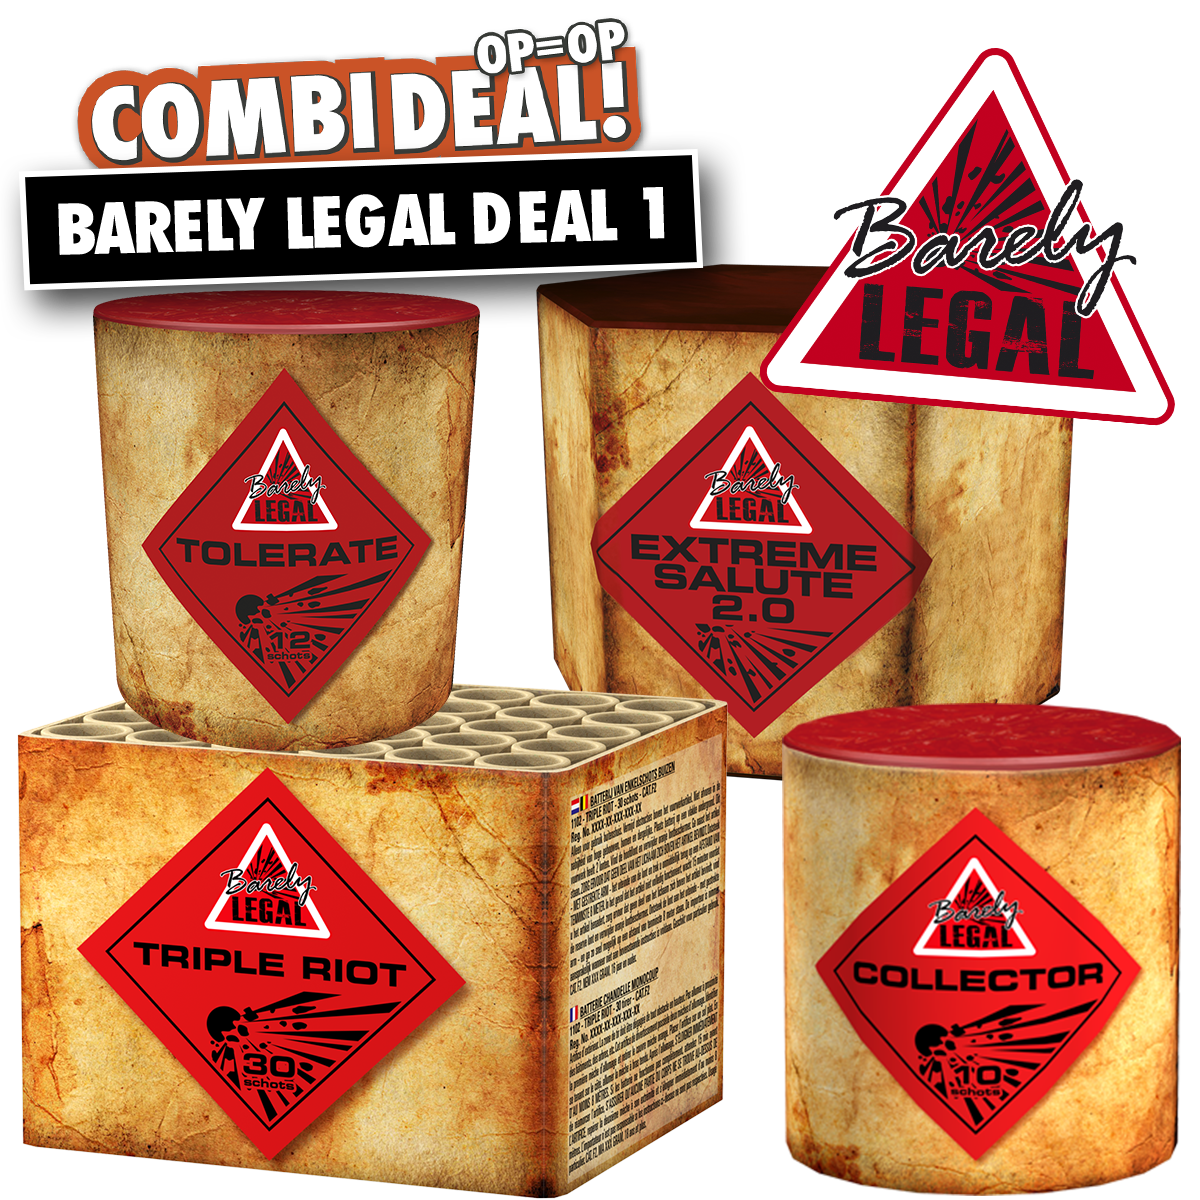 Combi deal barely legal deal 1